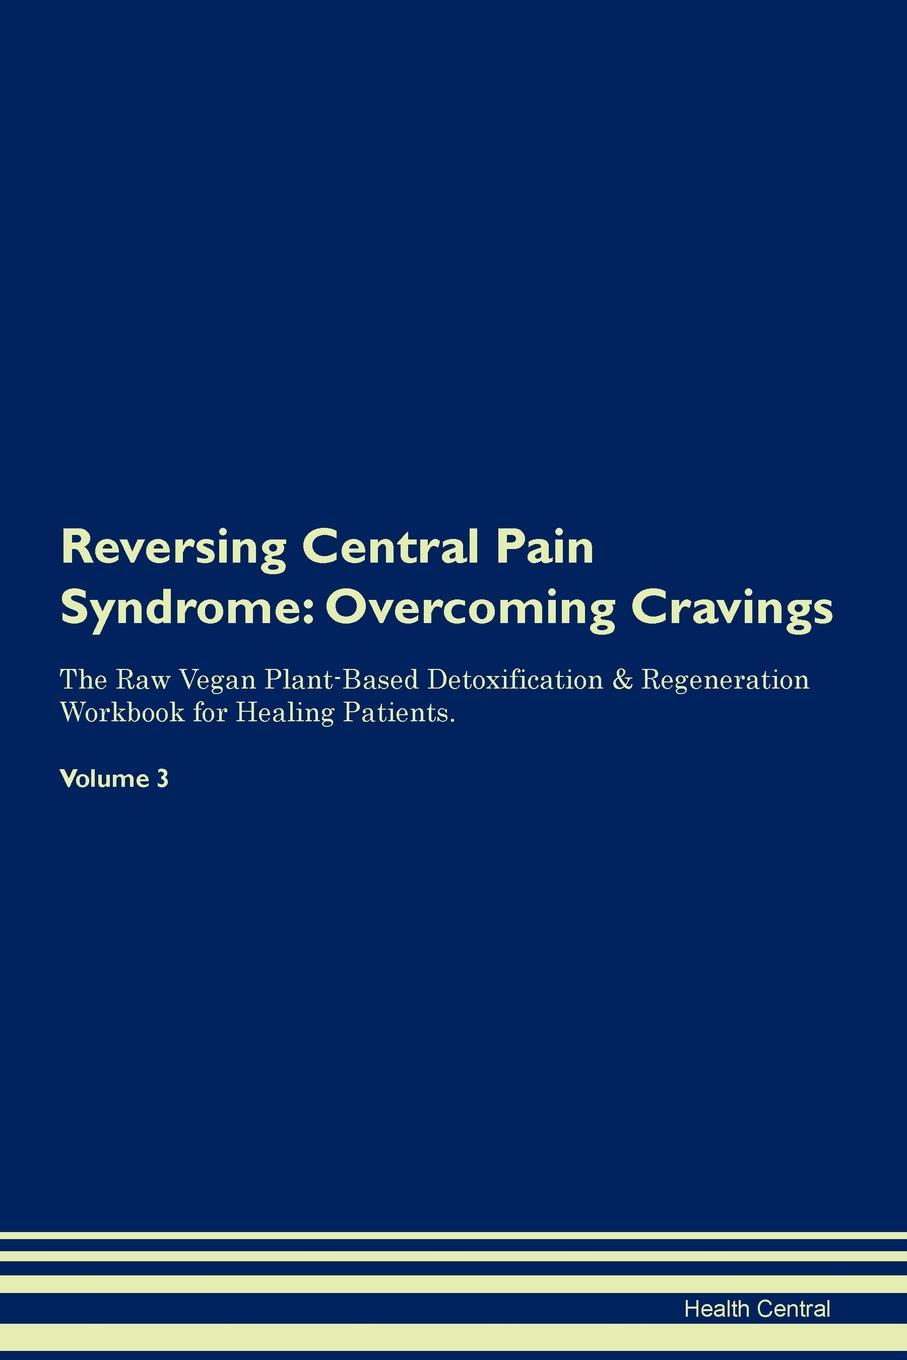 Фото - Health Central Reversing Central Pain Syndrome. Overcoming Cravings The Raw Vegan Plant-Based Detoxification & Regeneration Workbook for Healing Patients. Volume 3 health central reversing spinocerebellar ataxia overcoming cravings the raw vegan plant based detoxification